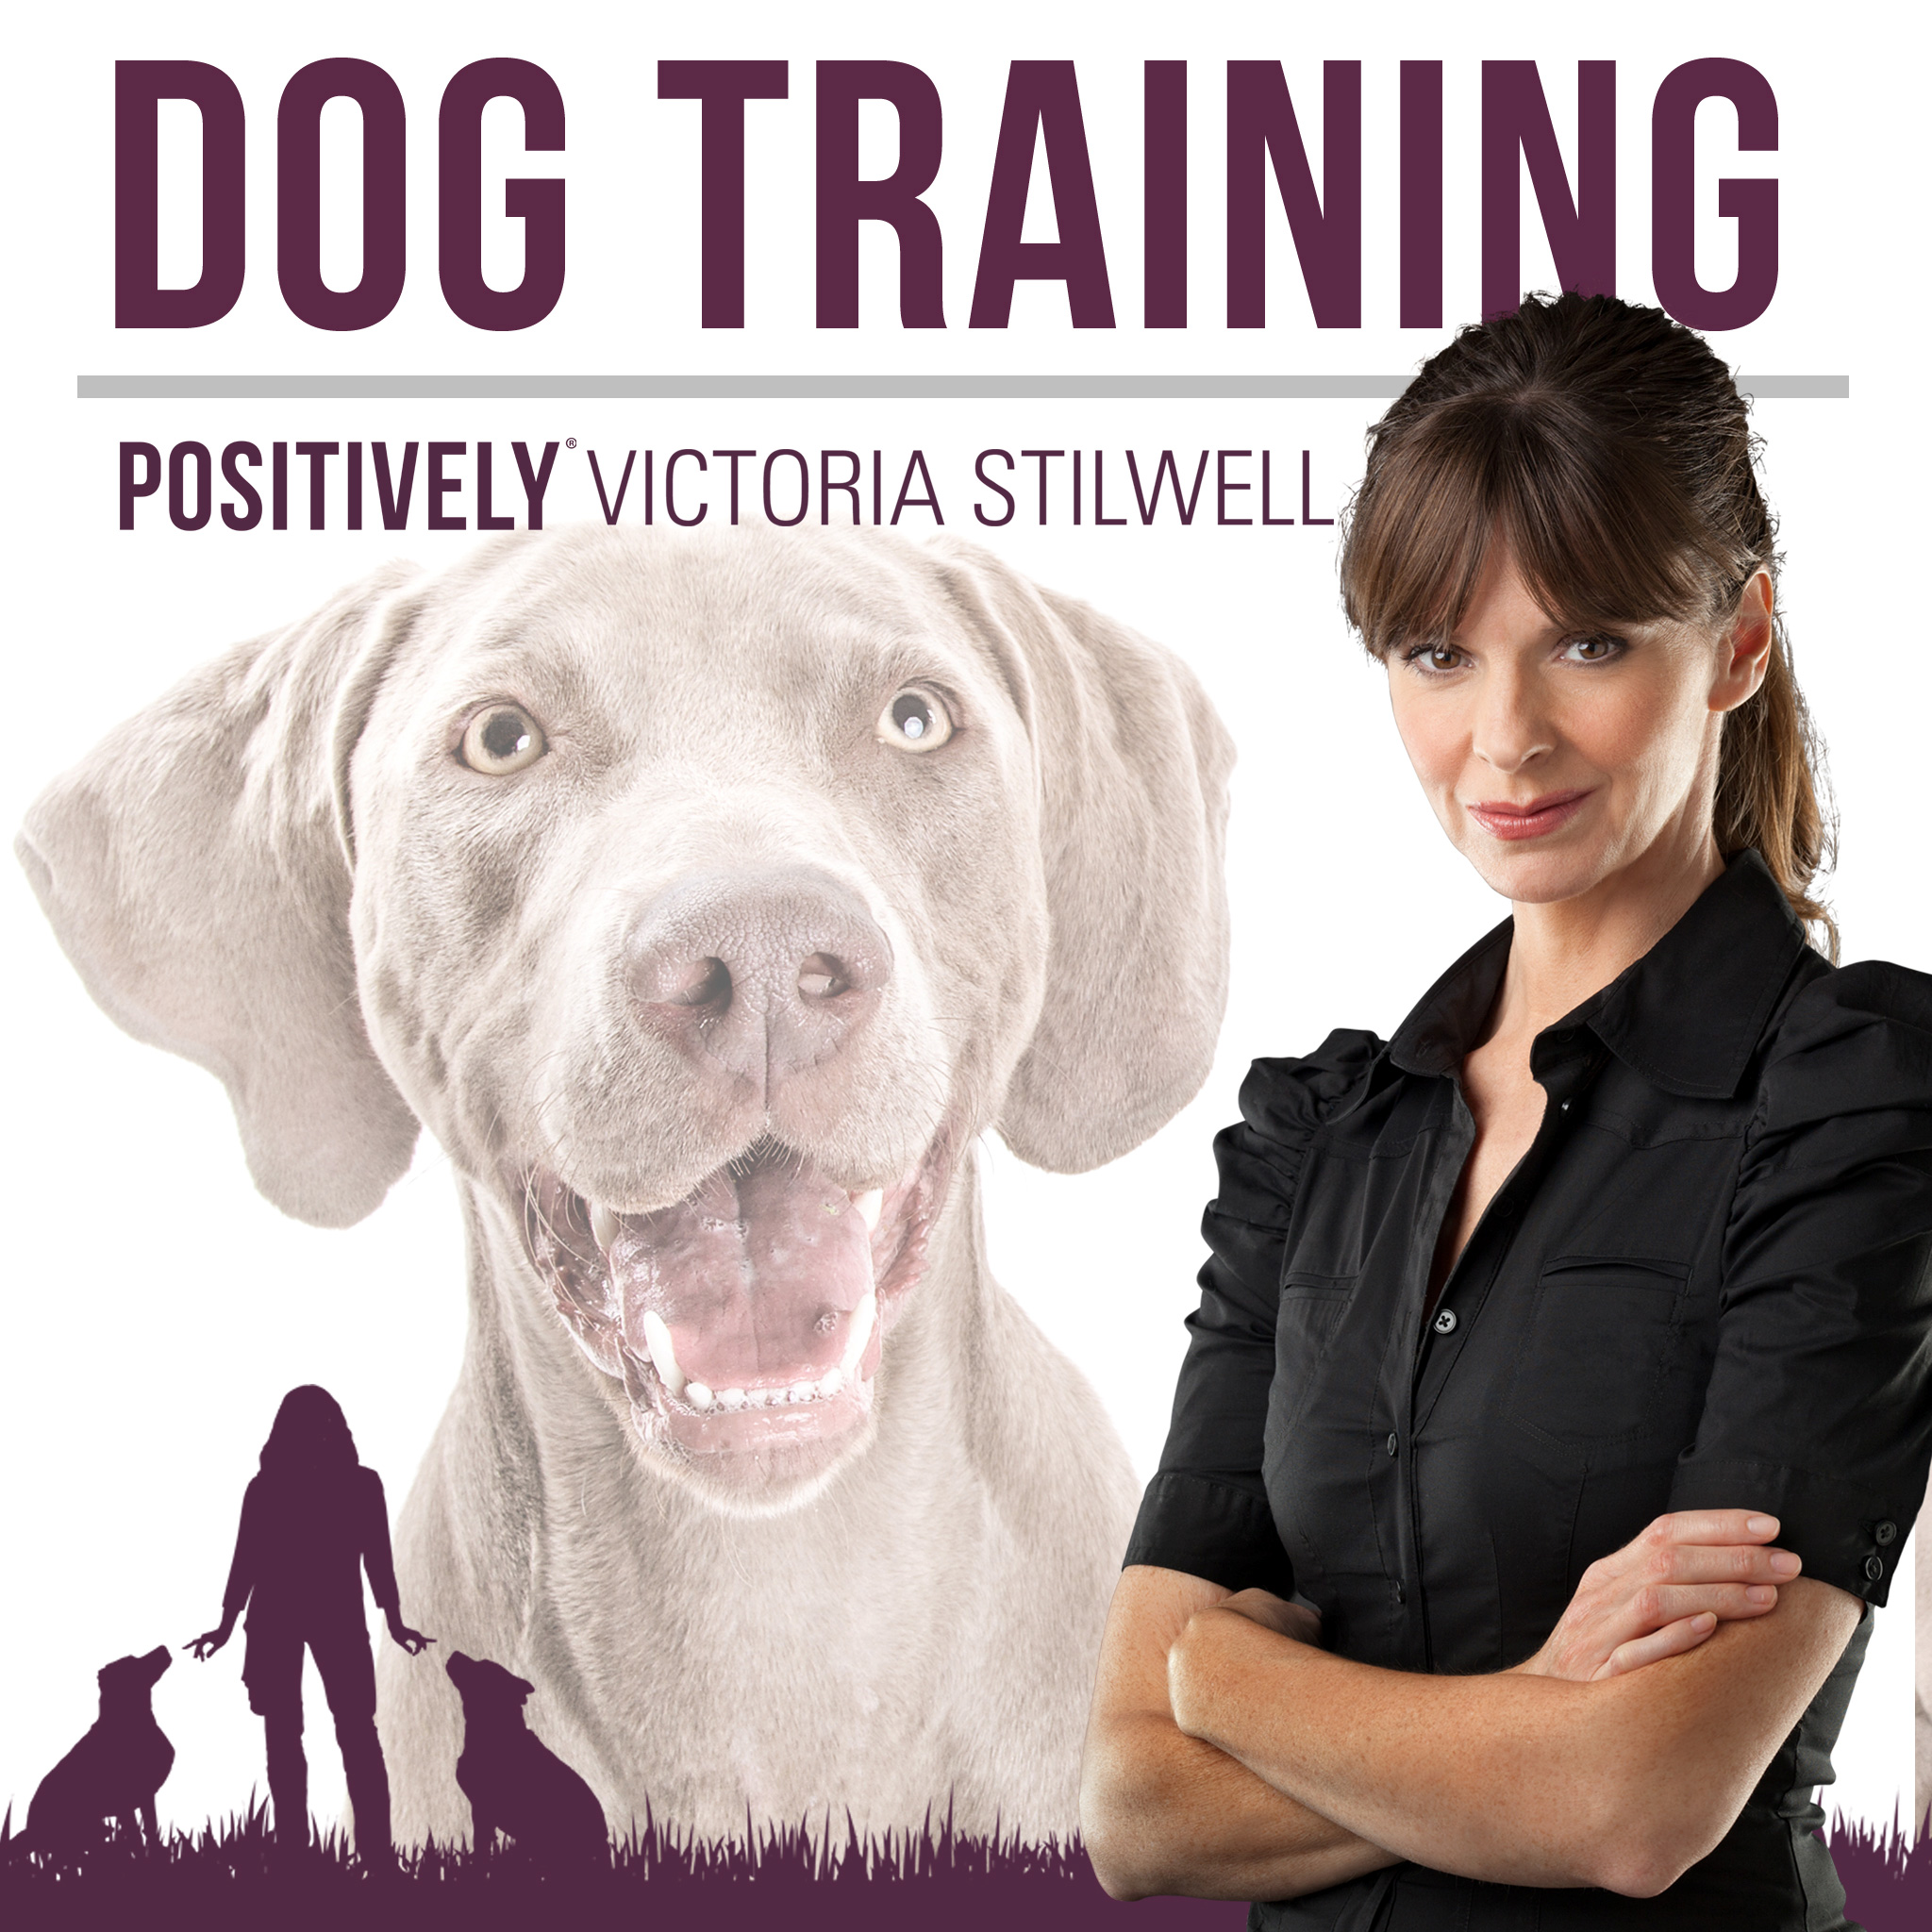 PositivelyDogTraining-Podcast-albumcover-v2-150331